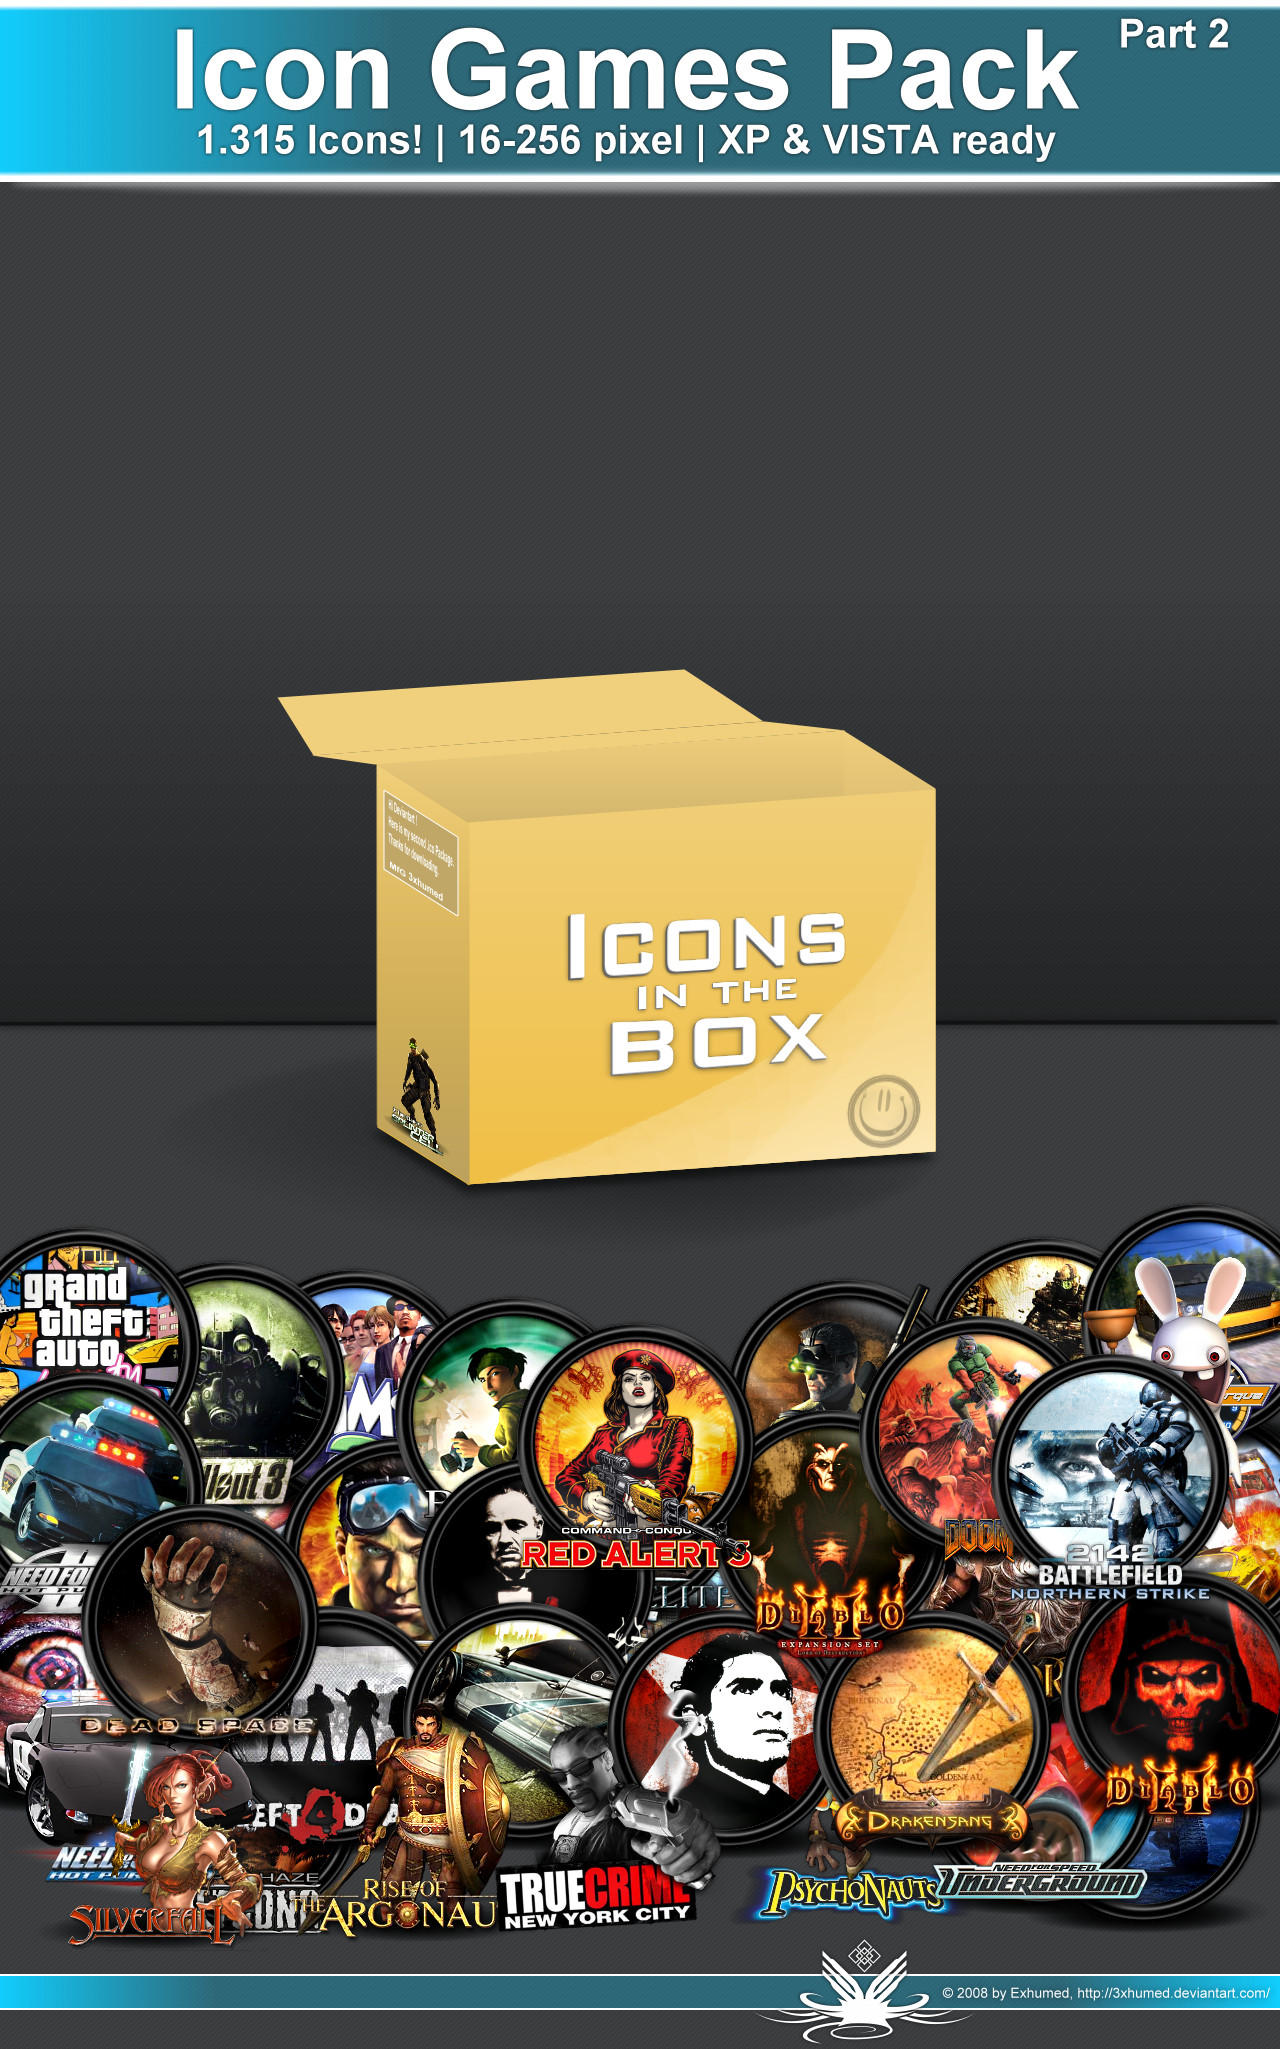 Icon Game Pack_part2 3of4 by 3xhumed